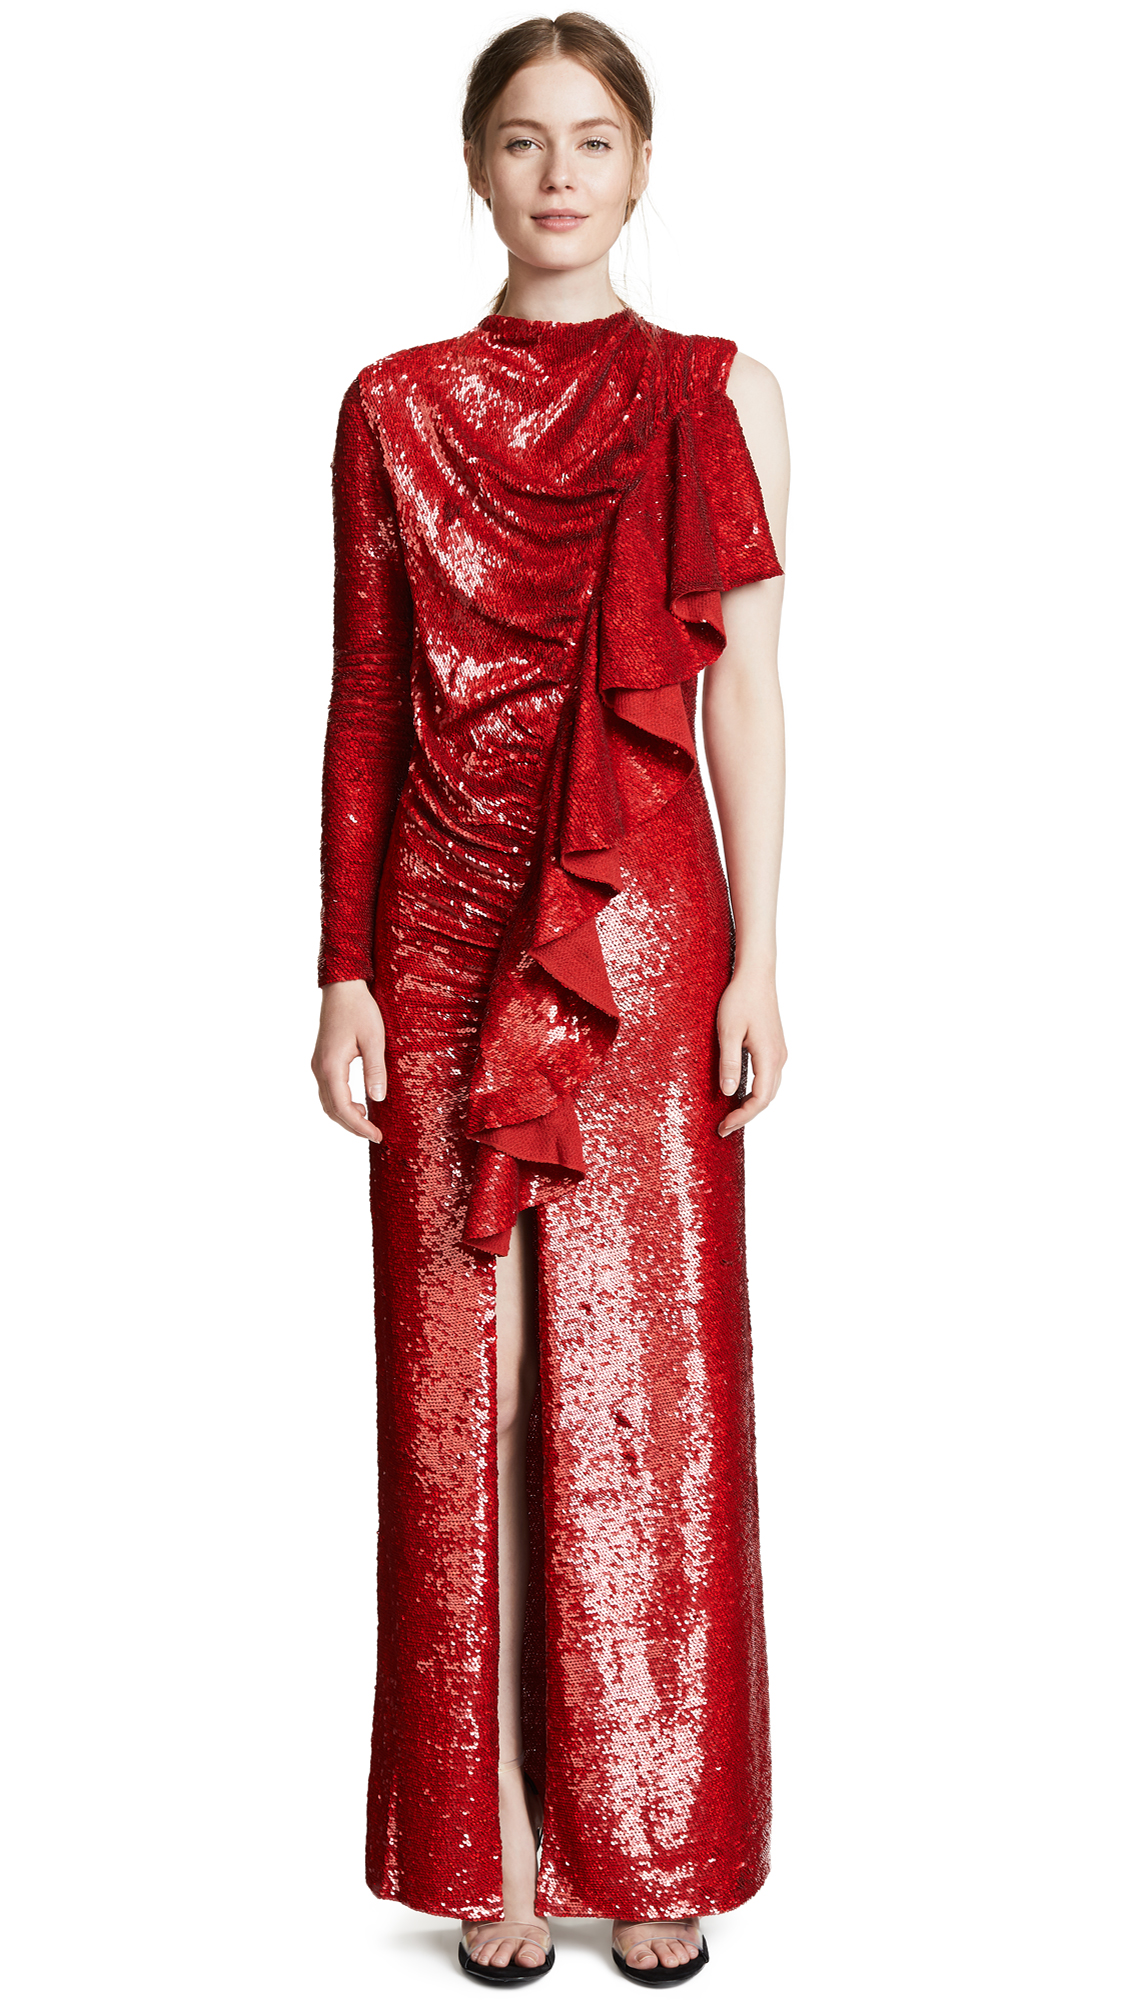 ASHISH Siren Dress